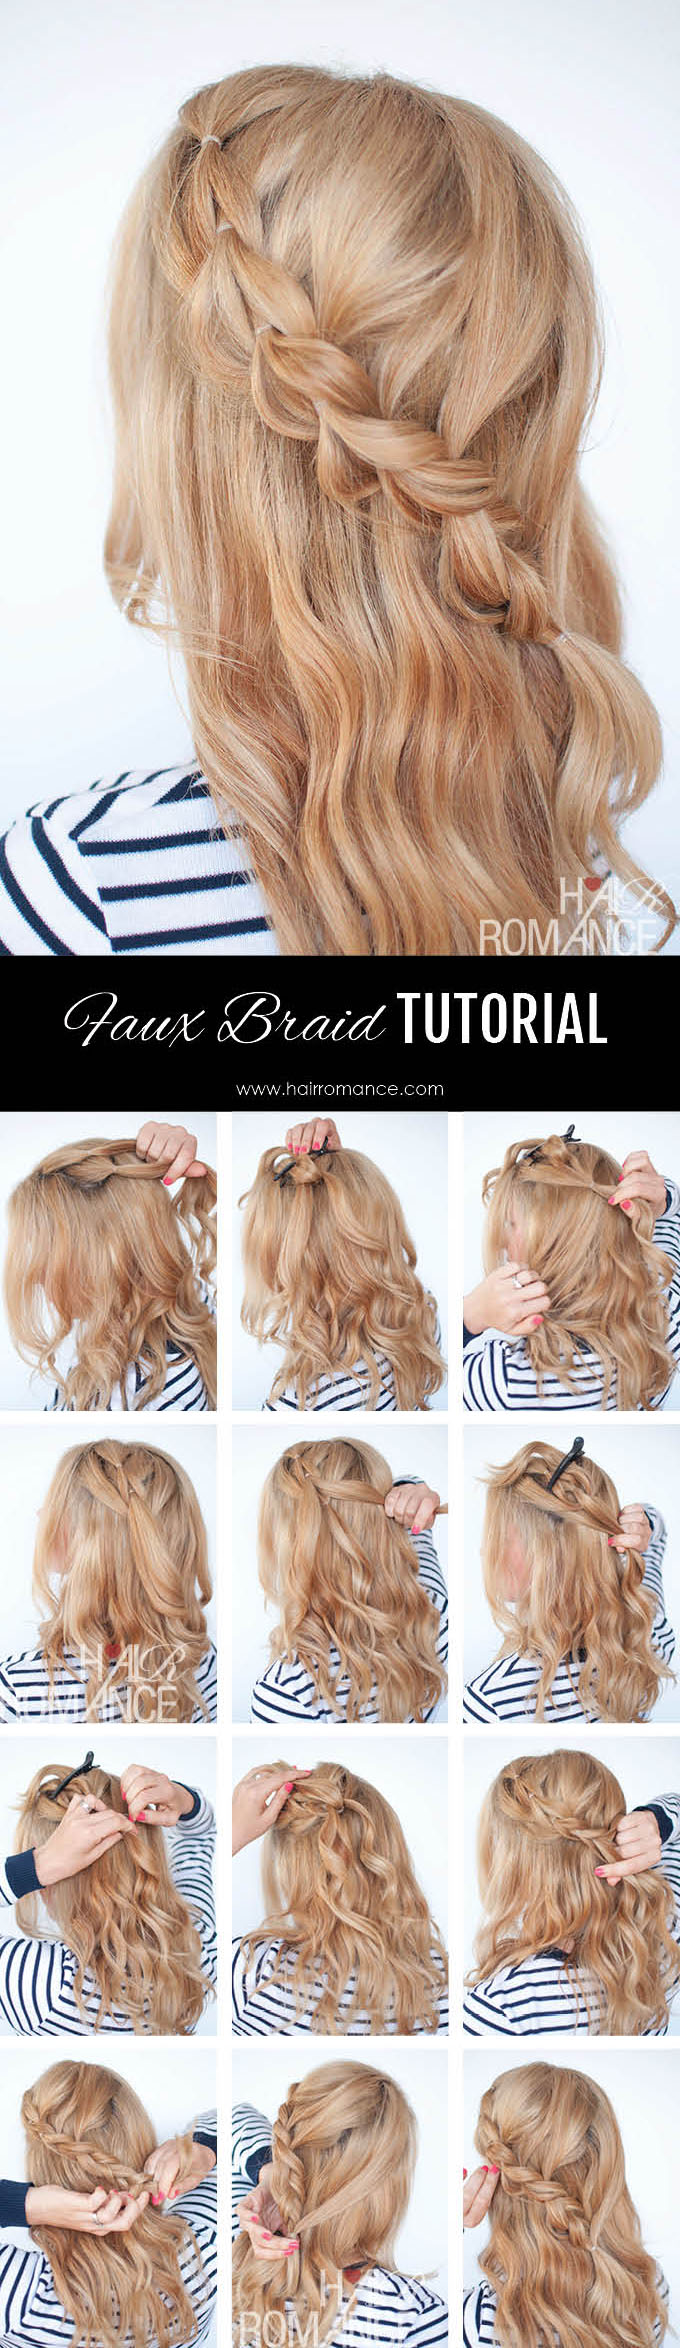 Hair-Romance-Braid-cheat-pull-through-braid-tutorial-3